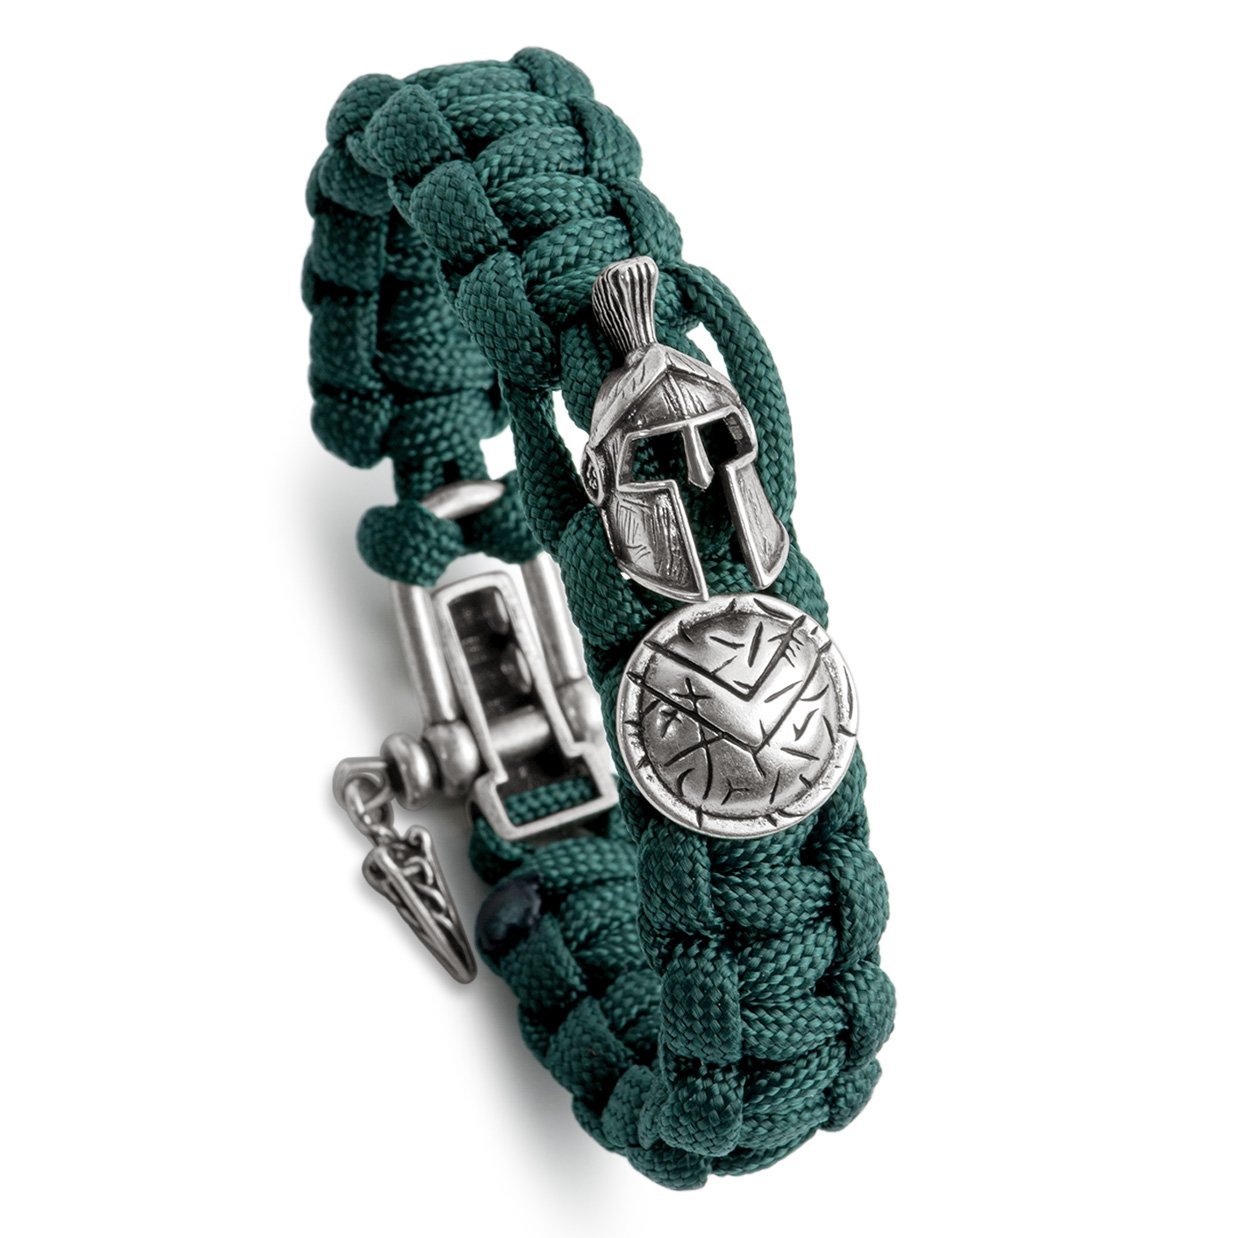 Kayder Antique Silver Spartan Helmet & Warrior Shield Charm Paracord Bracelet with Adjustable Metal D Shackle Closure, Men and Boys Jewelry Gift, Rainforest Green